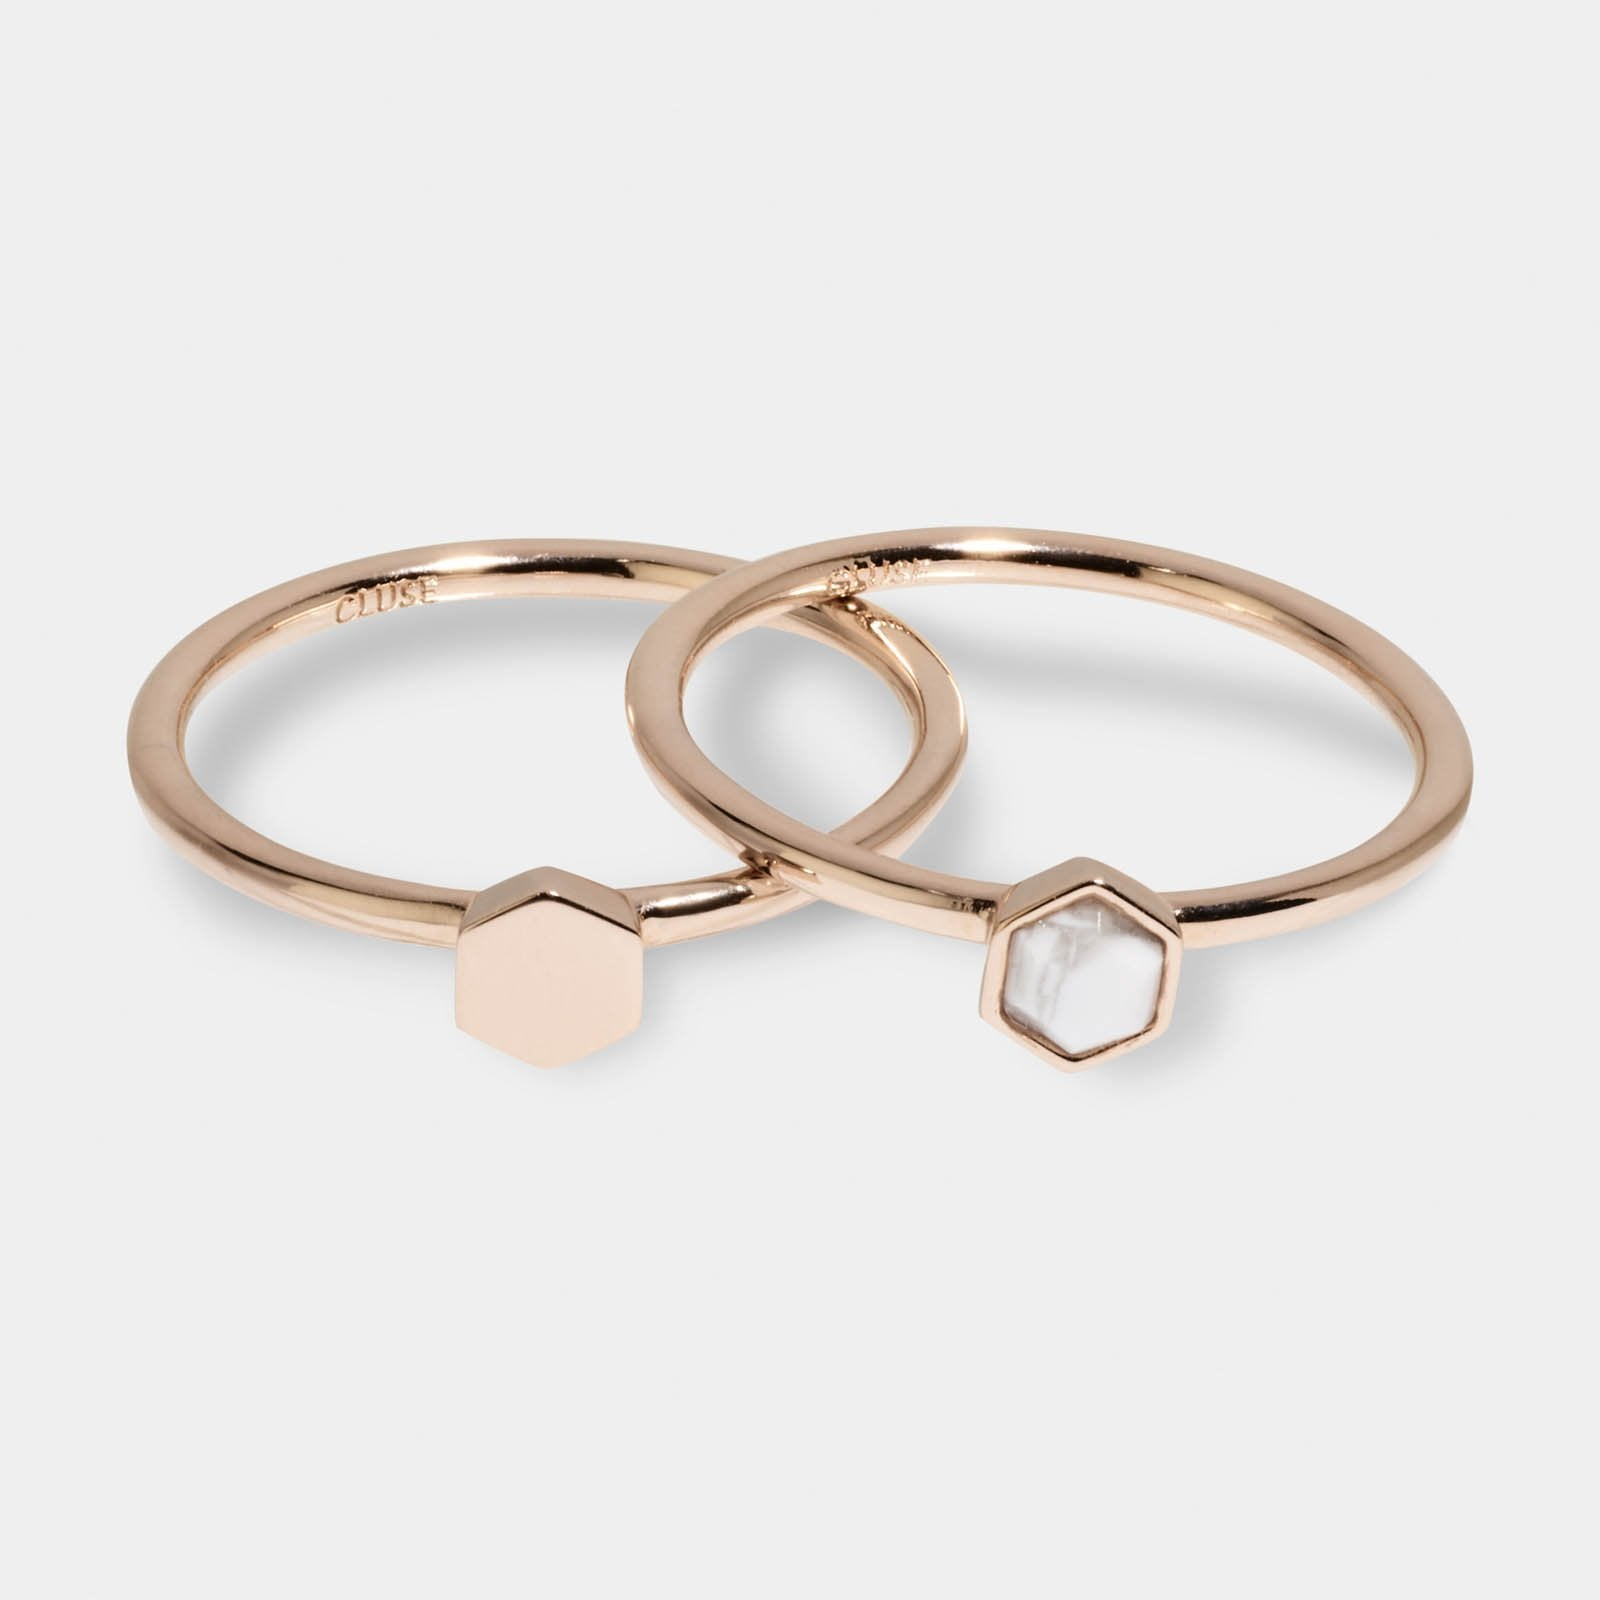 CLUSE Idylle Rose Gold Solid And Marble Hexagon Ring Set-54 CLJ40001-54 - Bagues taille 54